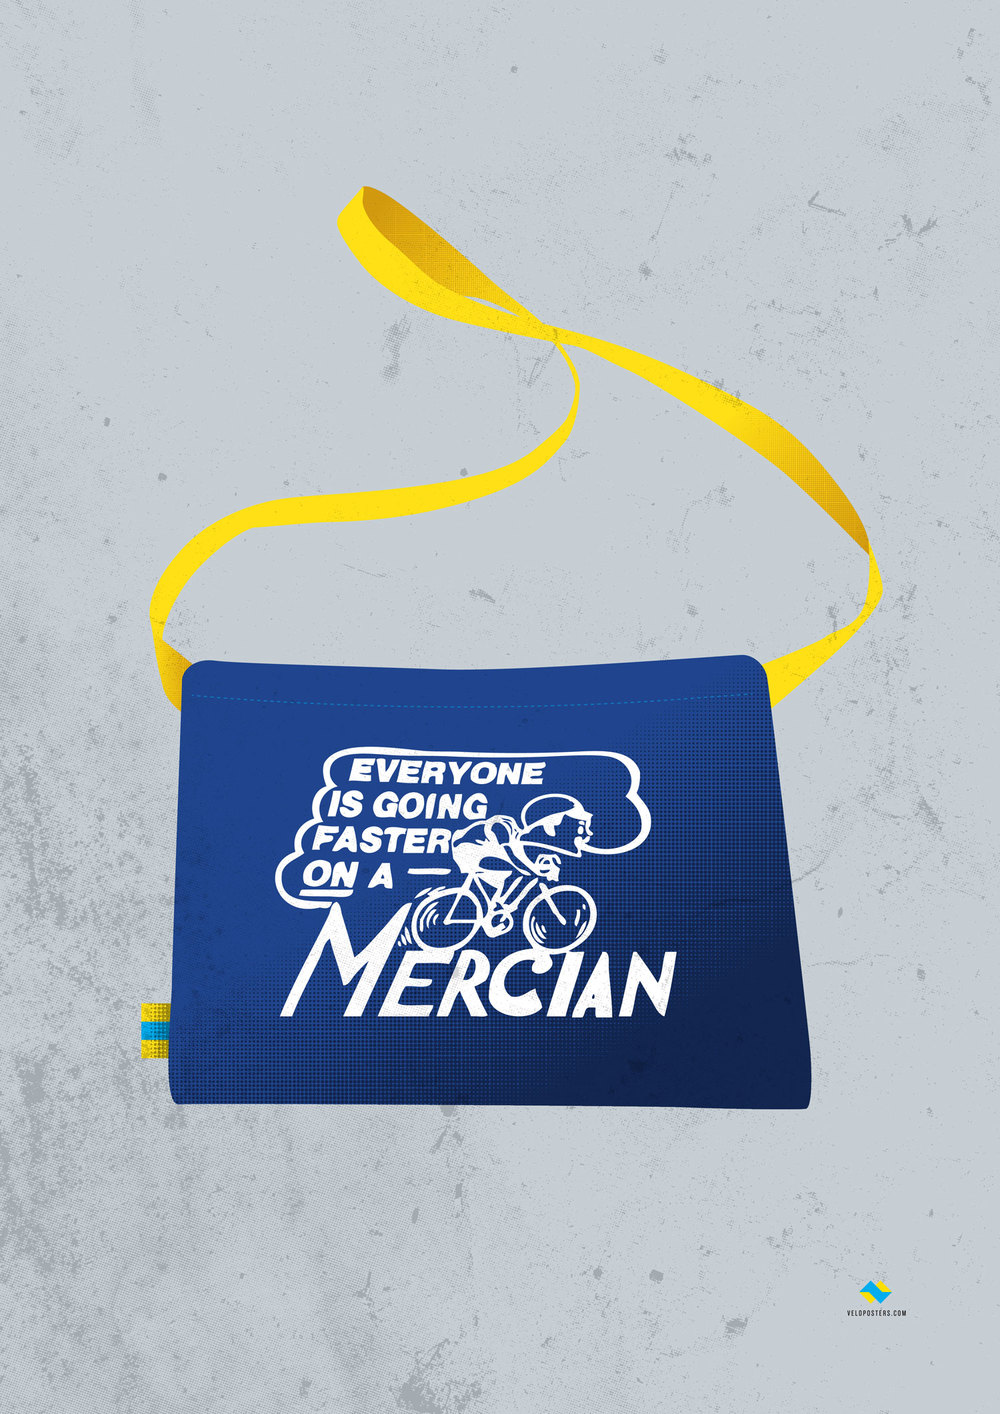 Musette - Mercian, our new Premium Poster in the shop now!